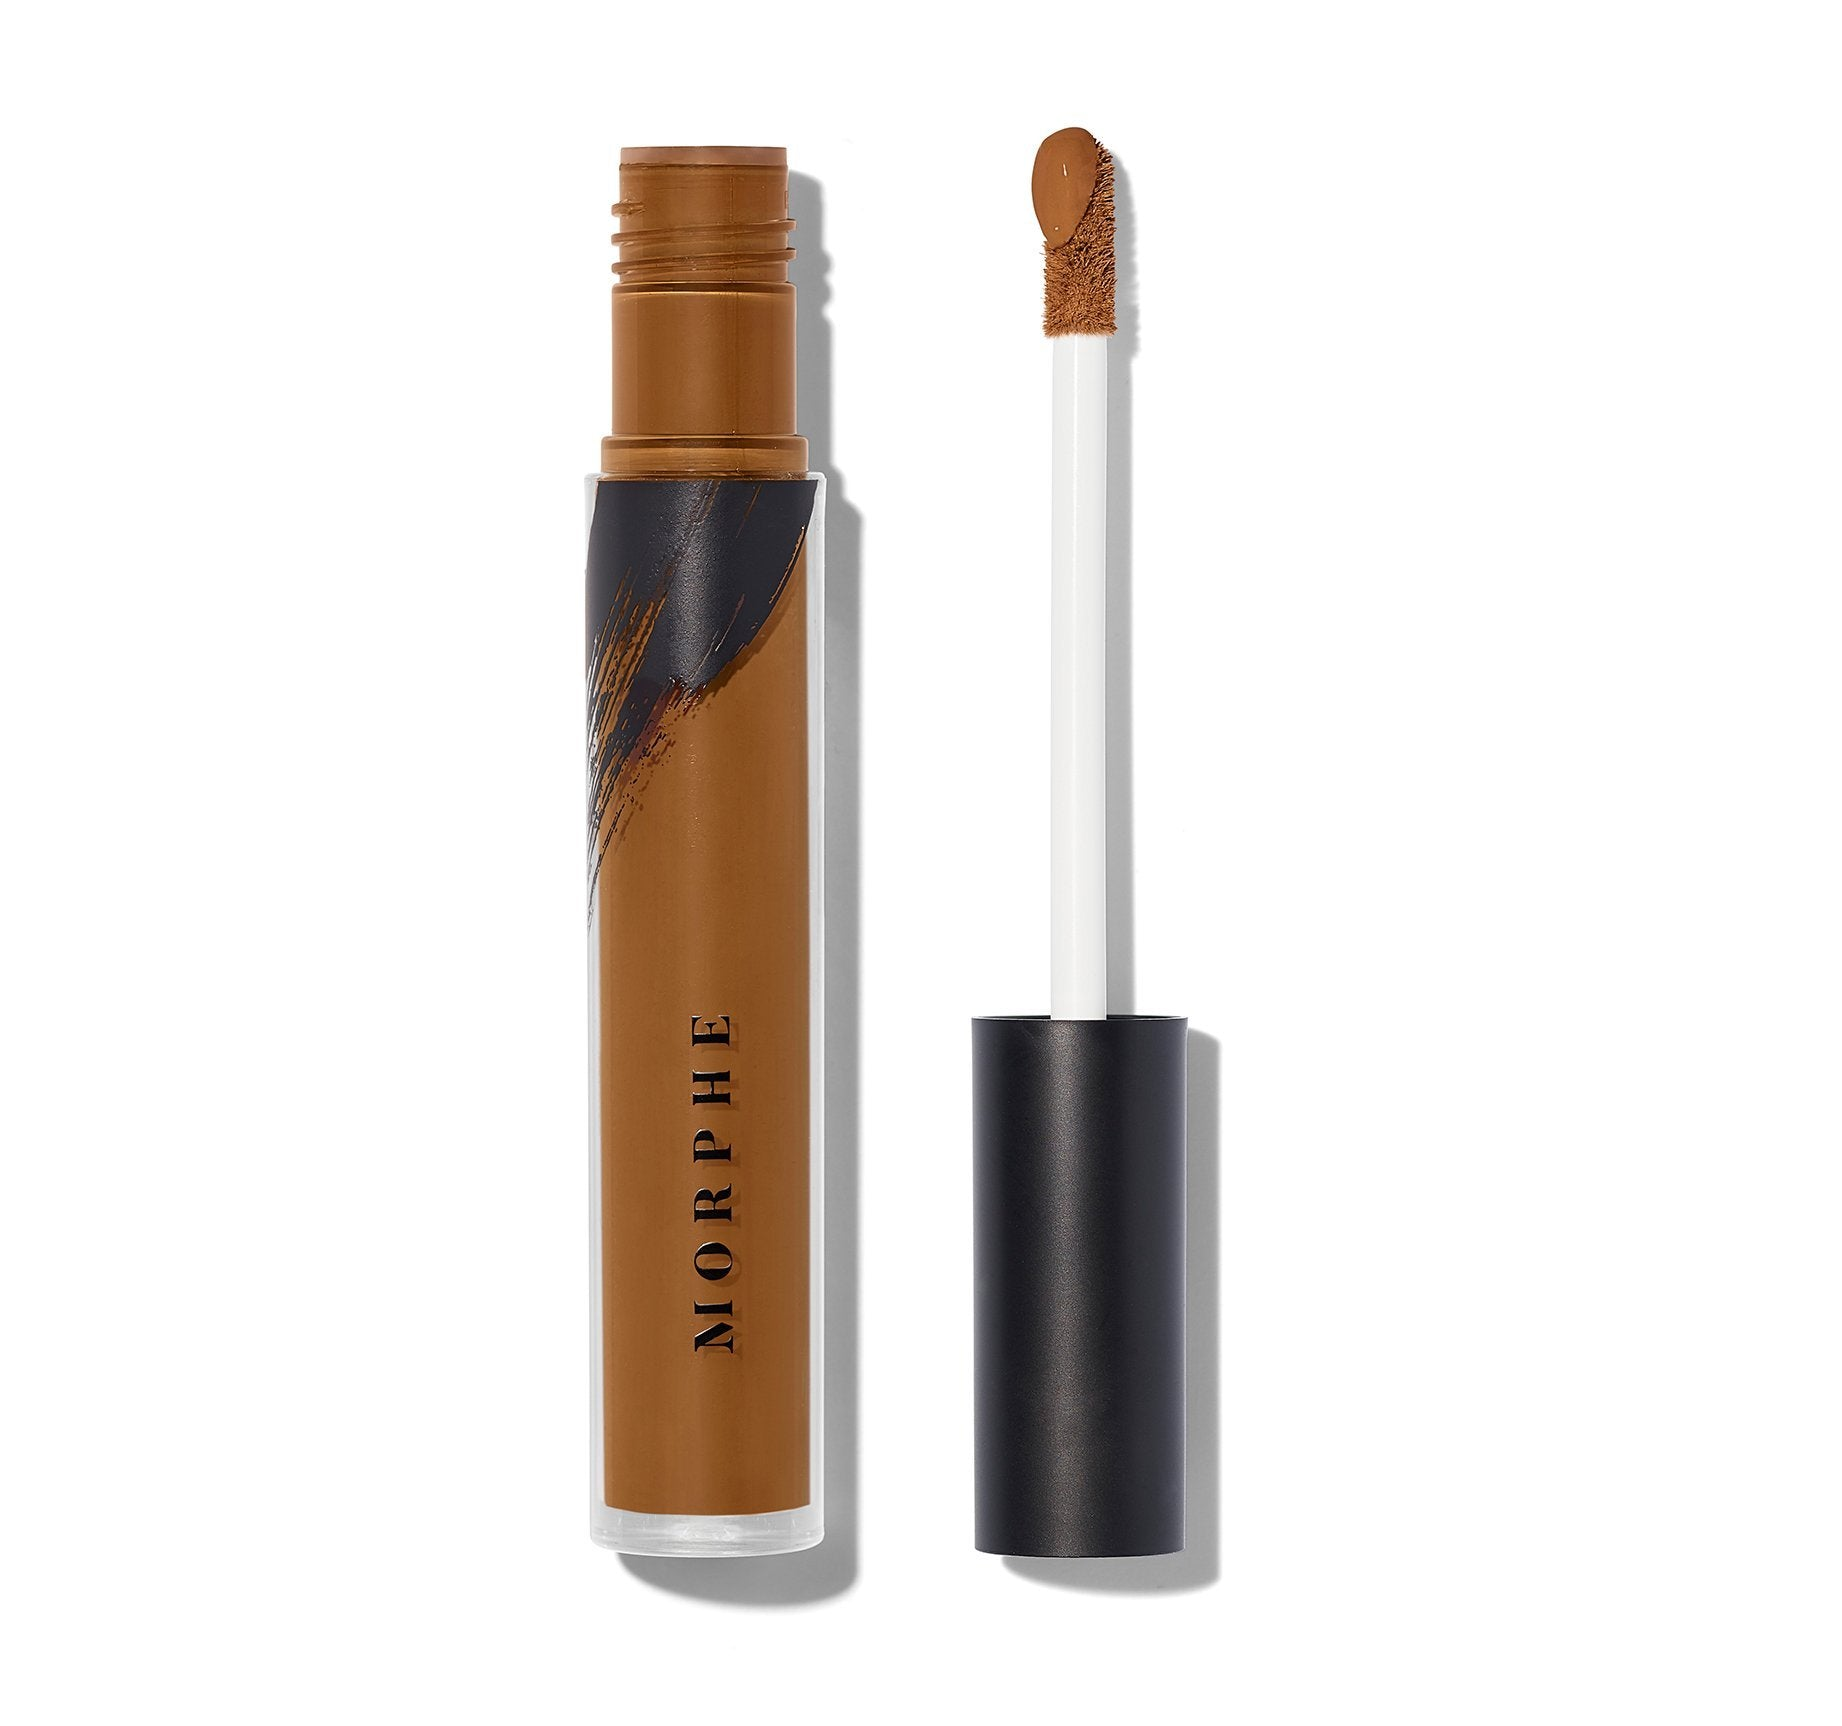 FLUIDITY FULL-COVERAGE CONCEALER - C4.35, view larger image